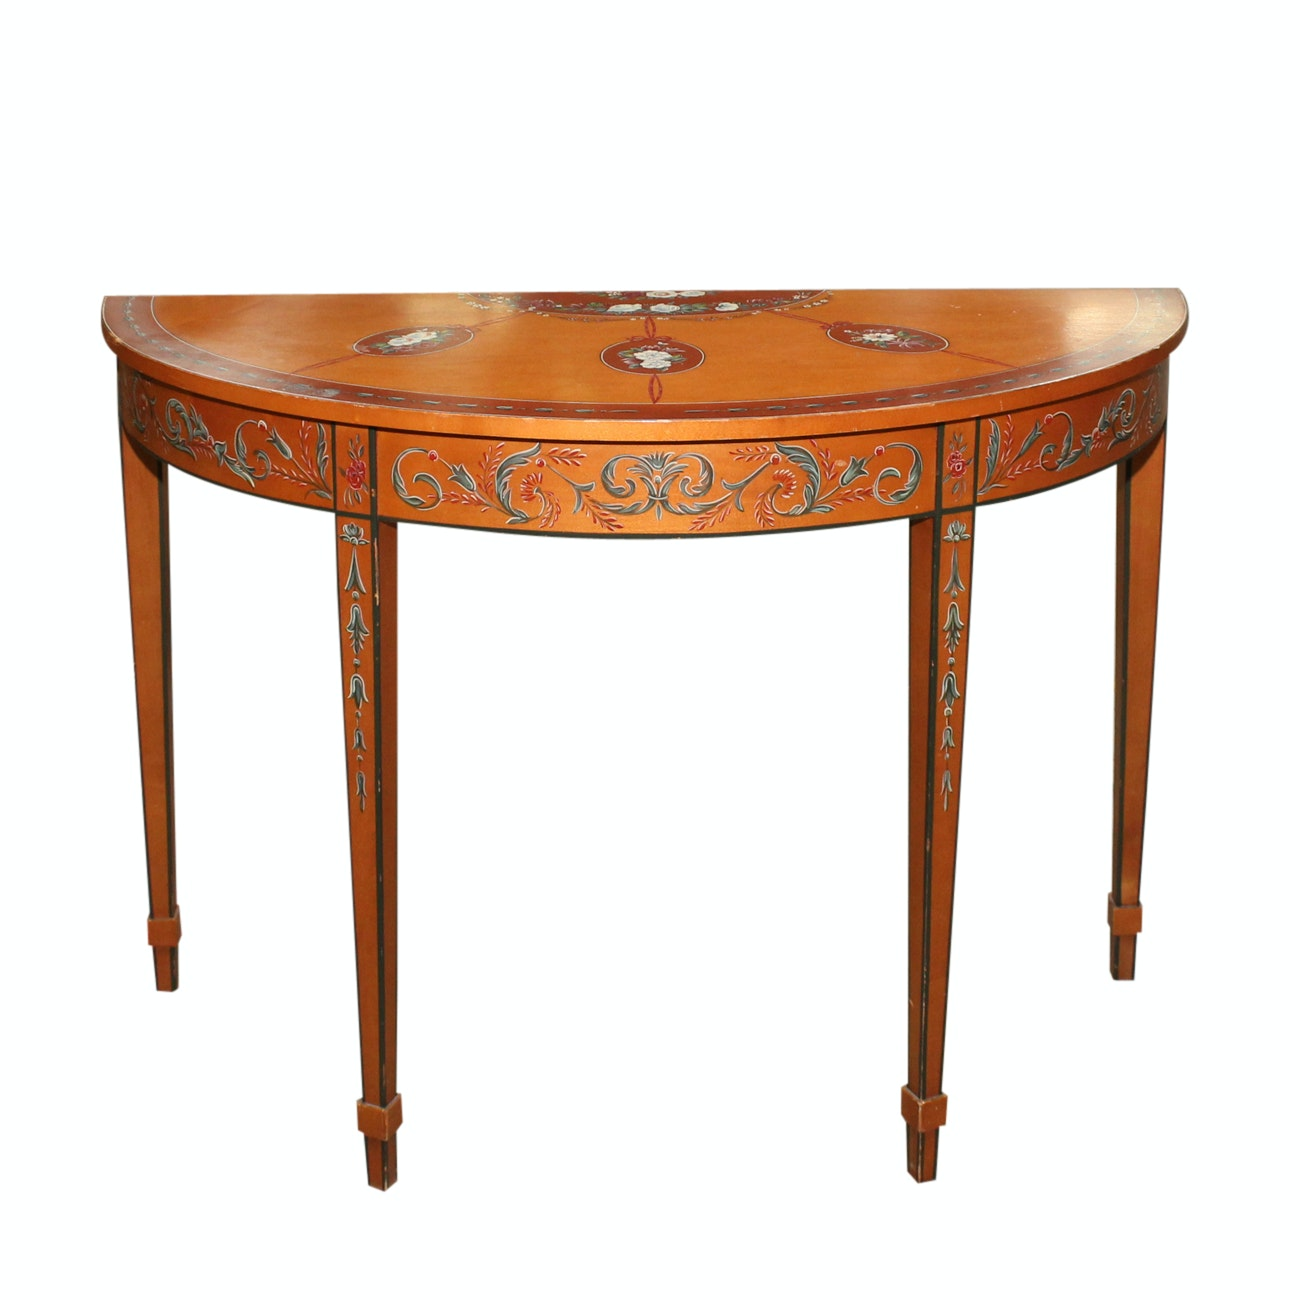 George III Style Paint-Decorated Demilune Console Table by Chelsea House